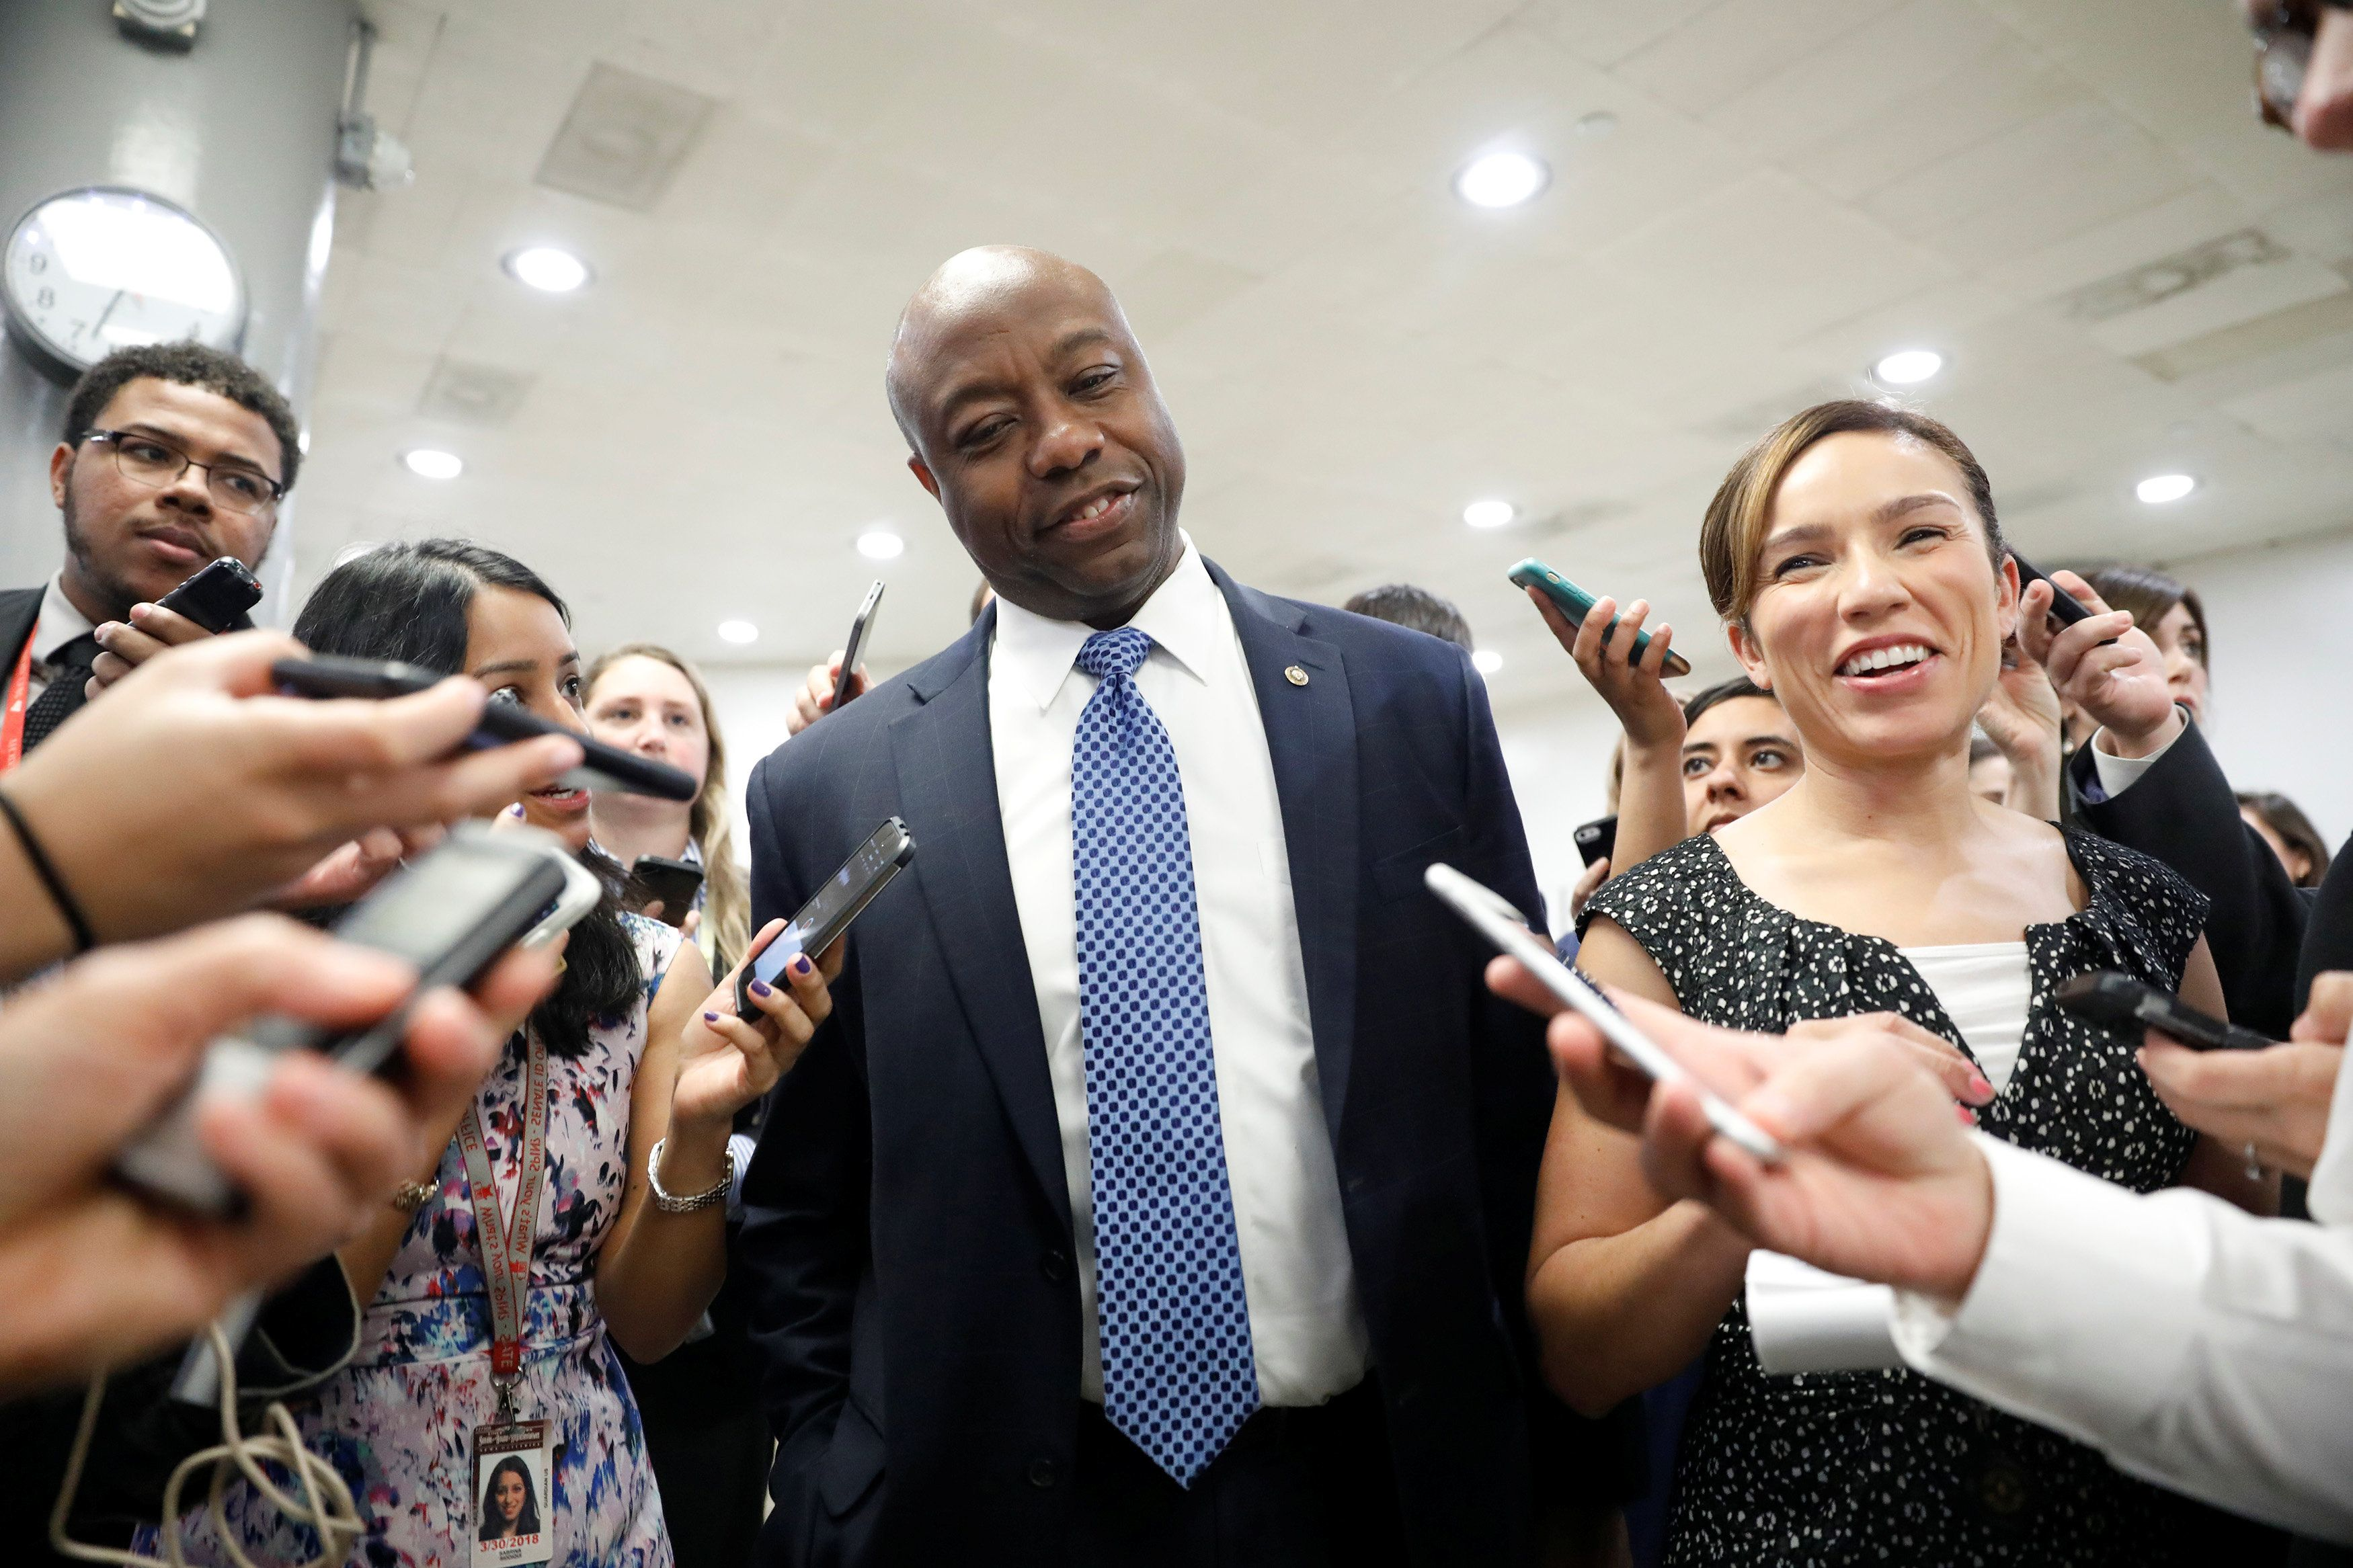 Sen. Tim Scott (R-SC) speaks to reporters about recent revelations of President Donald Trump sharing classified information with Russian Officials on Capitol Hill in Washington, D.C., U.S. May 16, 2017.  REUTERS/Aaron P. Bernstein